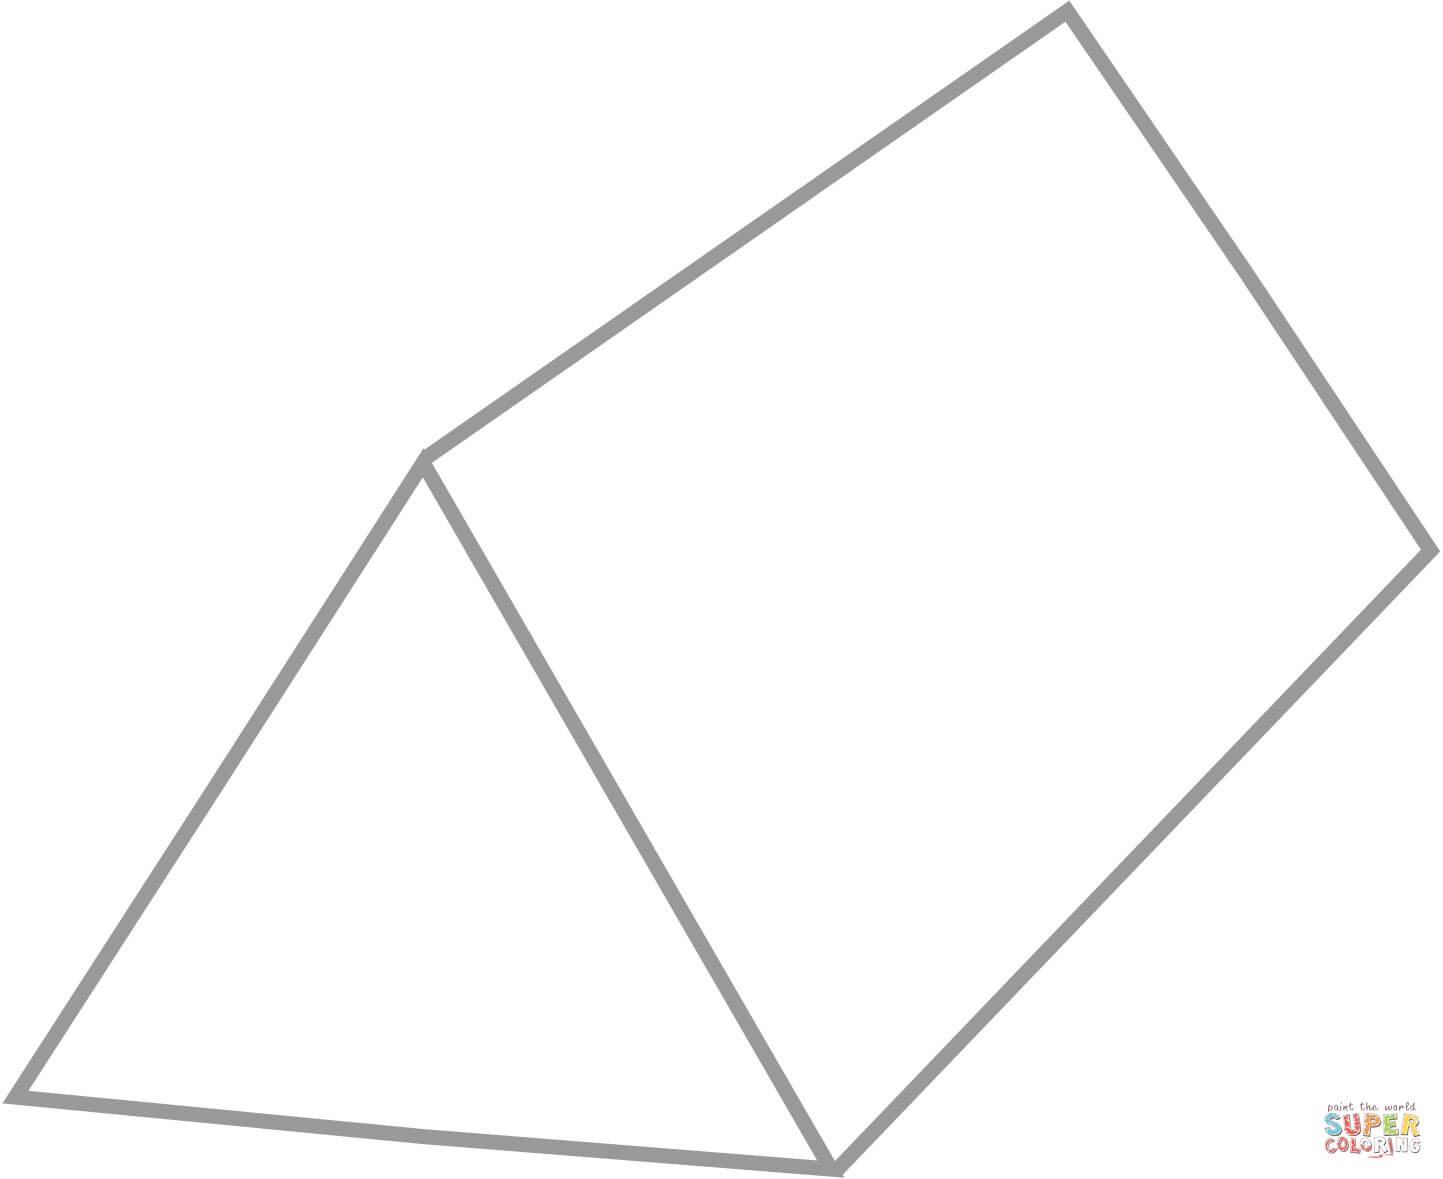 Triangular Prism coloring page.